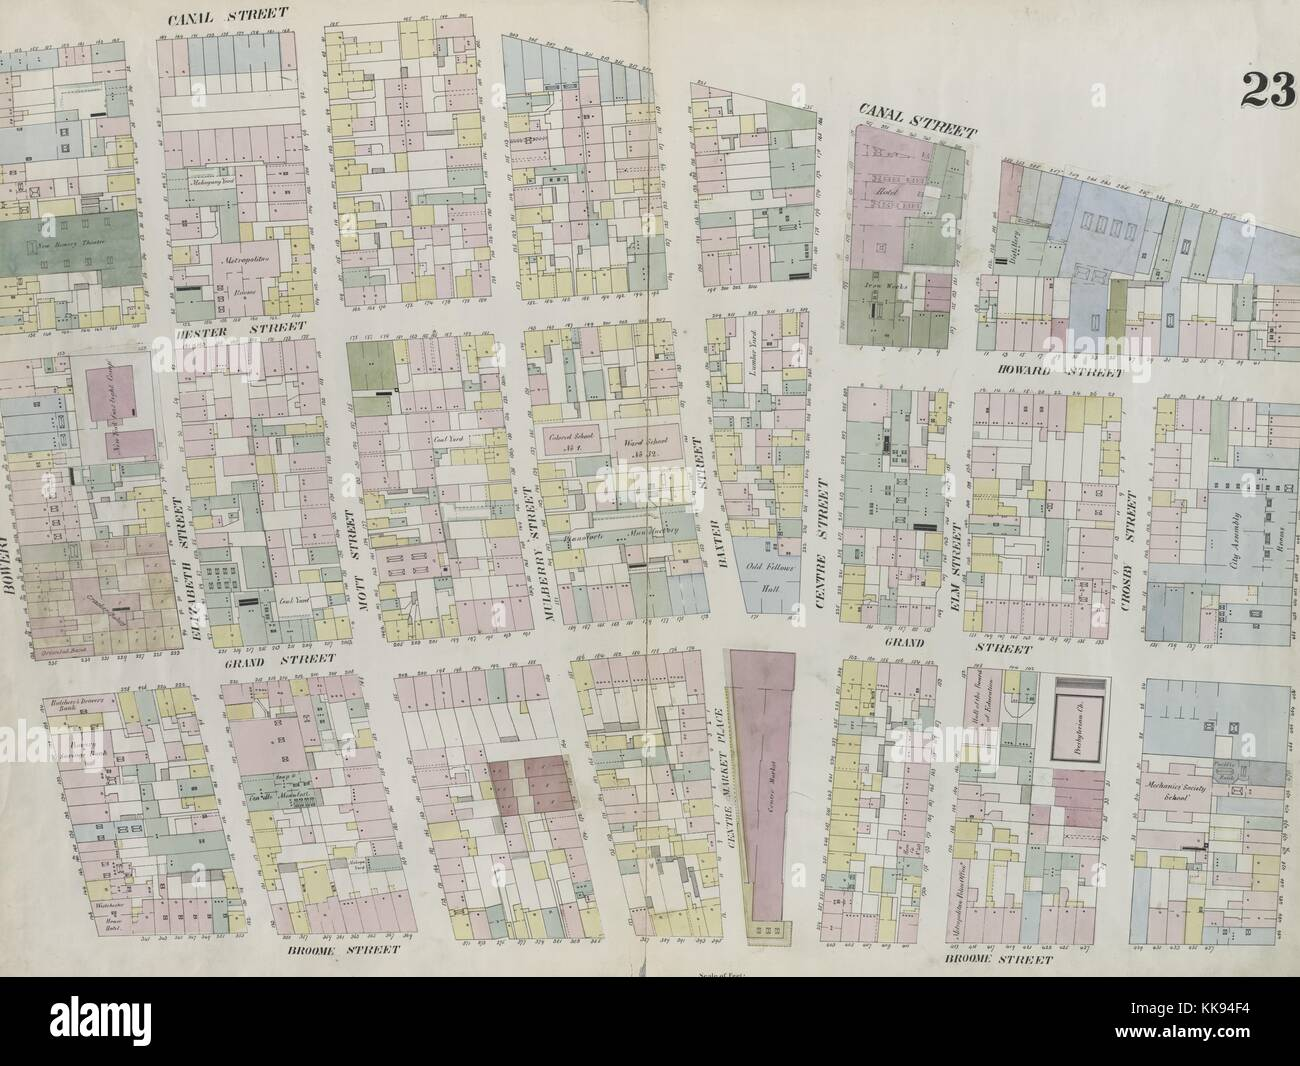 Engraved map image from an atlas, with original caption reading 'Plate 23: Map bounded by Broome Street, Bowery, - Stock Image